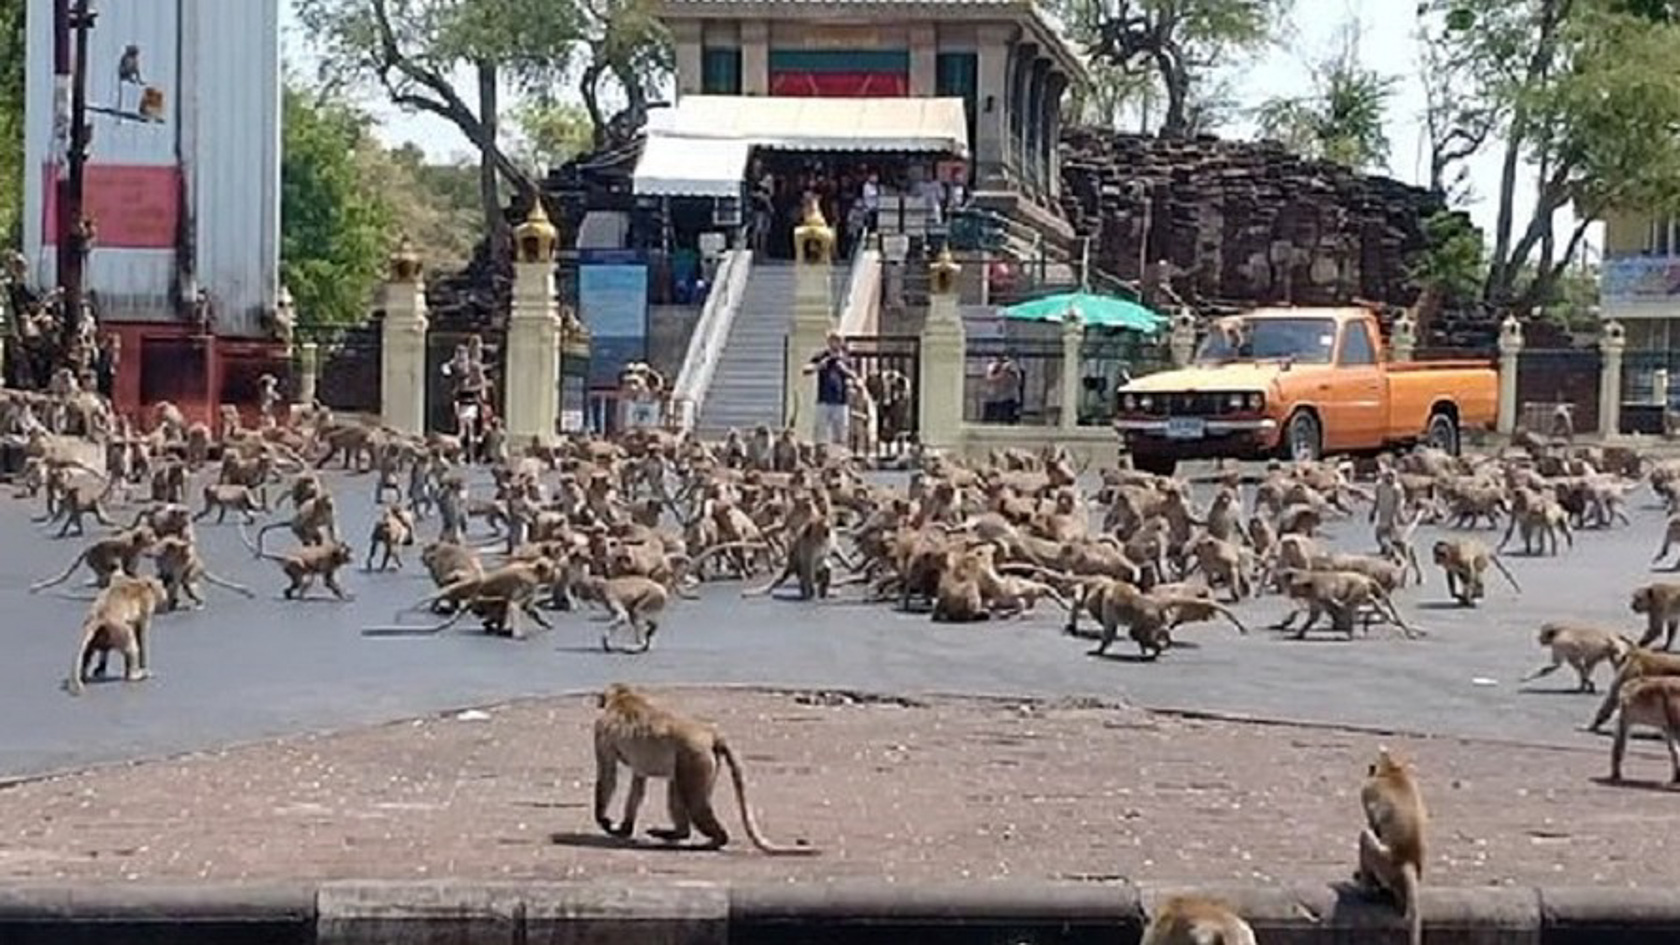 Watch Hundreds Of Wild Monkeys Take Over Thai City After